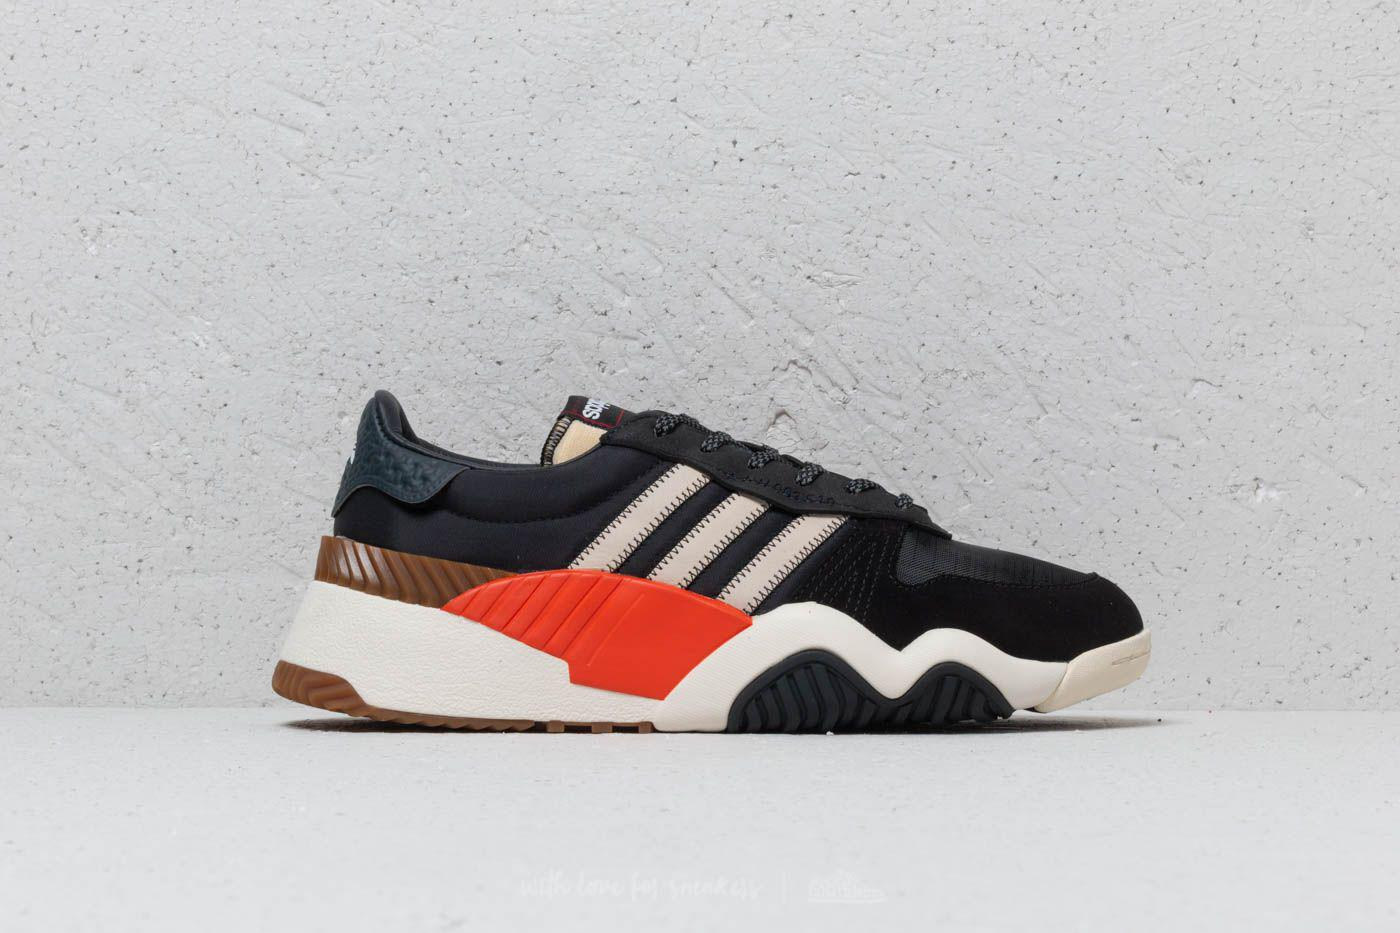 on sale 94691 a2998 Lyst - Footshop Adidas X Alexander Wang Turnout Trainer Core